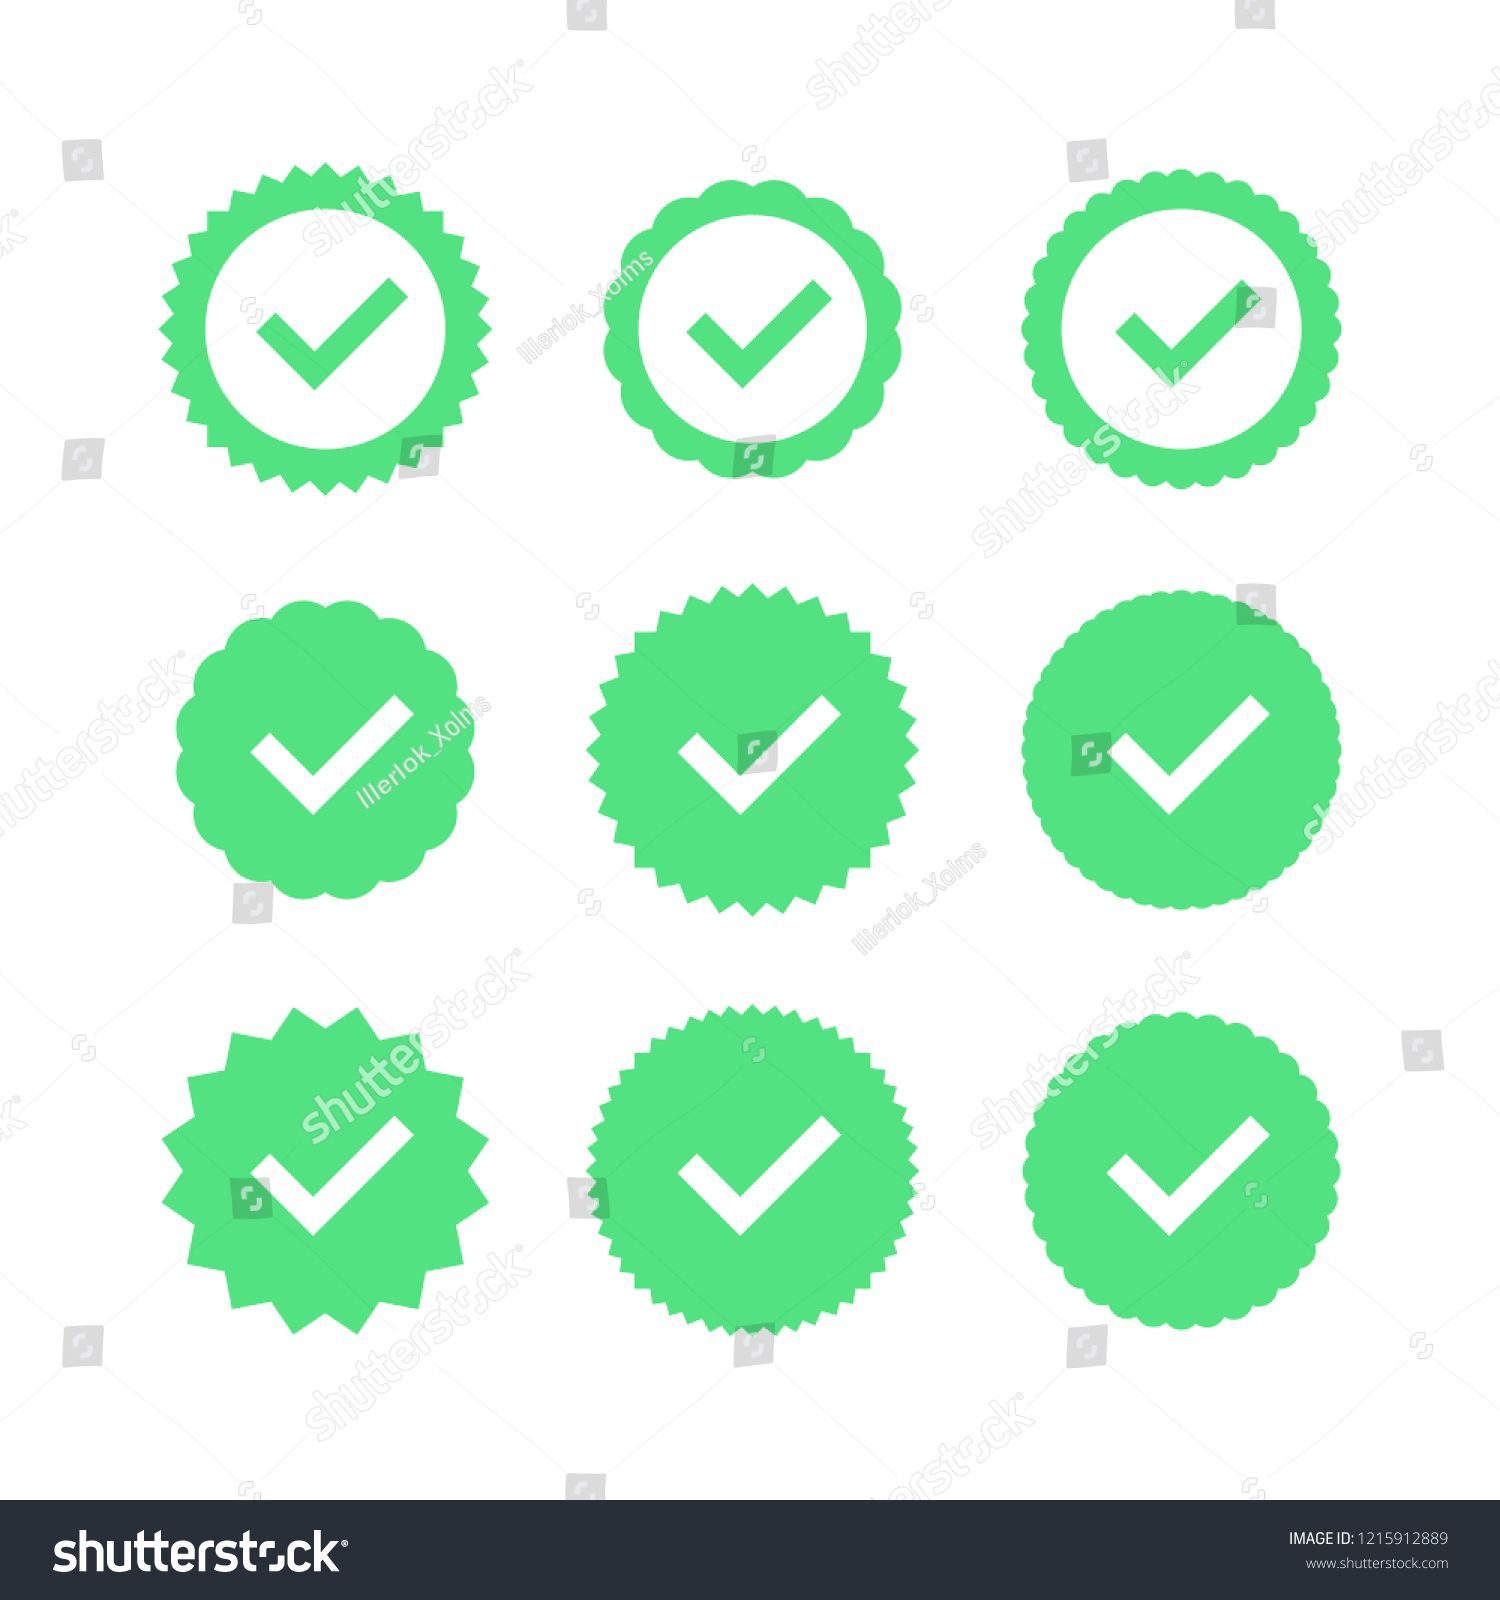 Approved icon. Profile Verification. Accept badge. Quality